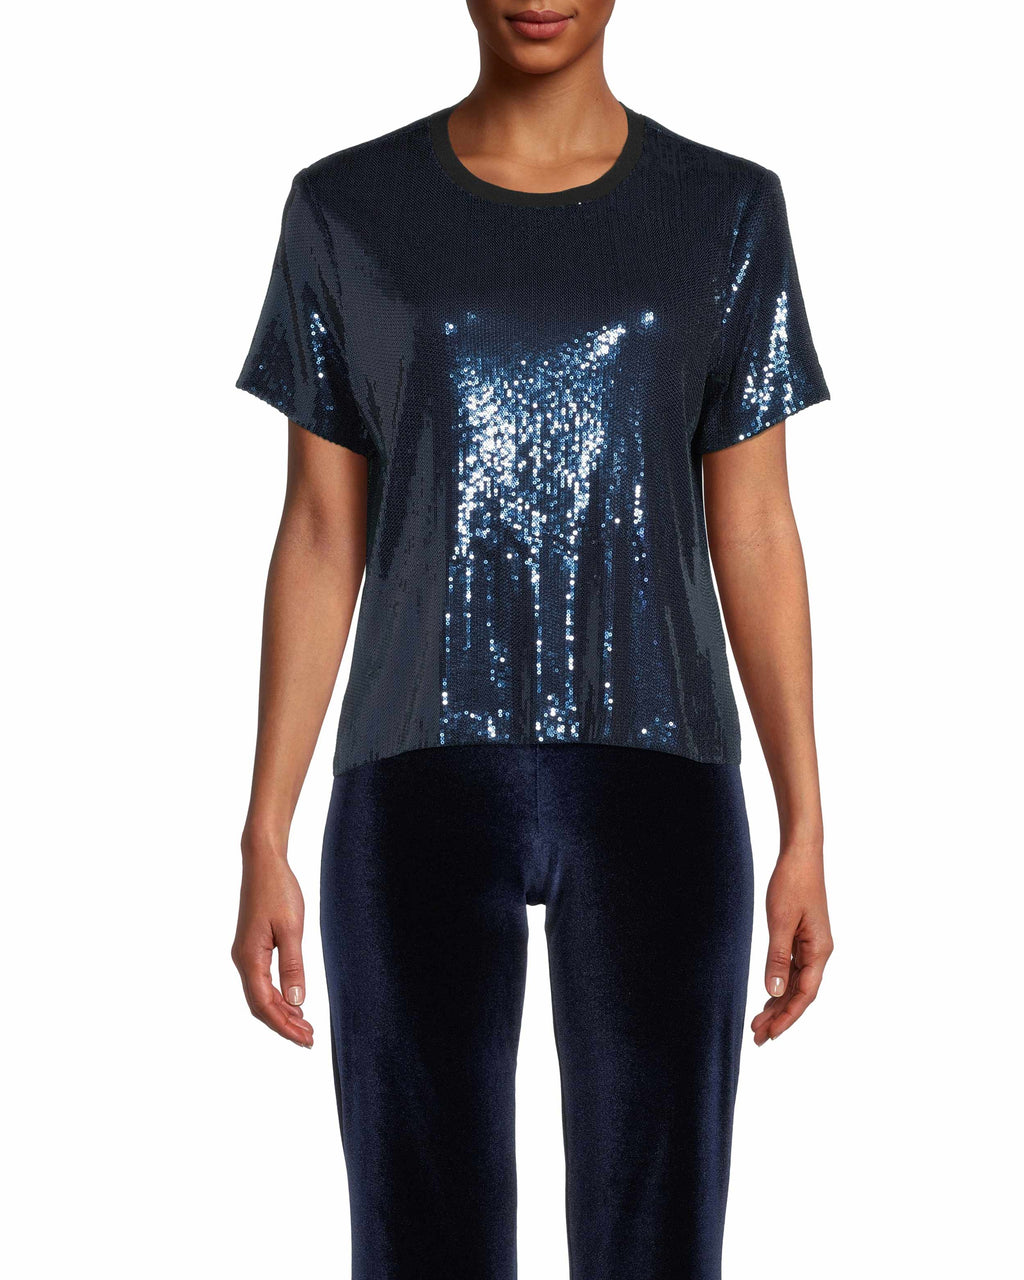 CT18392 - SEQUIN TSHIRT - tops - shirts - Now this is what we call an elevated basic. This classic t-shirt silhouette is upgraded with navy blue sequins throughout with a soft lining to prevent scratching. Add 1 line break Stylist tip: Pair with your favorite denim for a casual night out.